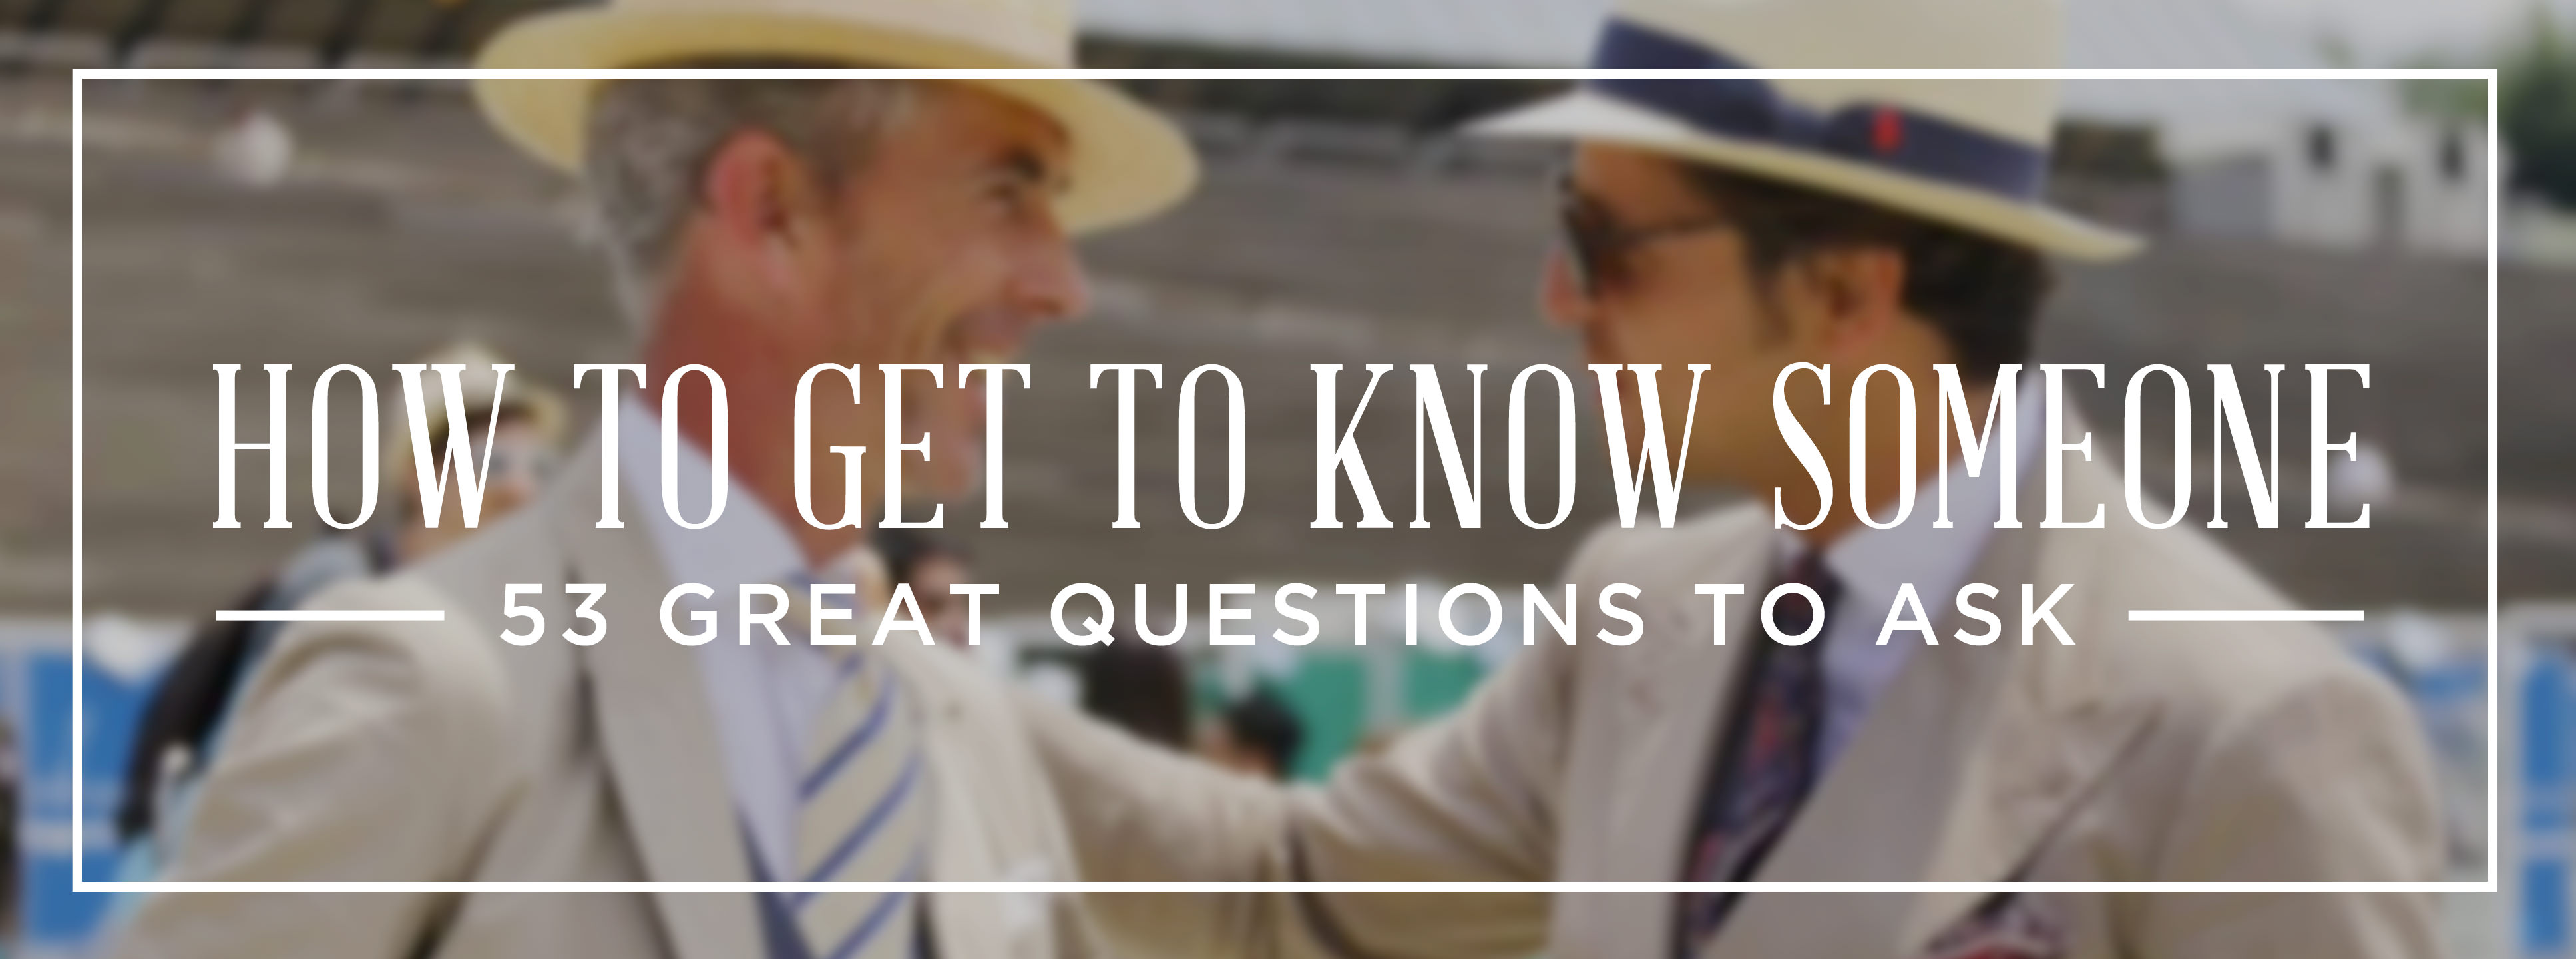 How To Get To Know Someone: 53 Great Questions To Ask